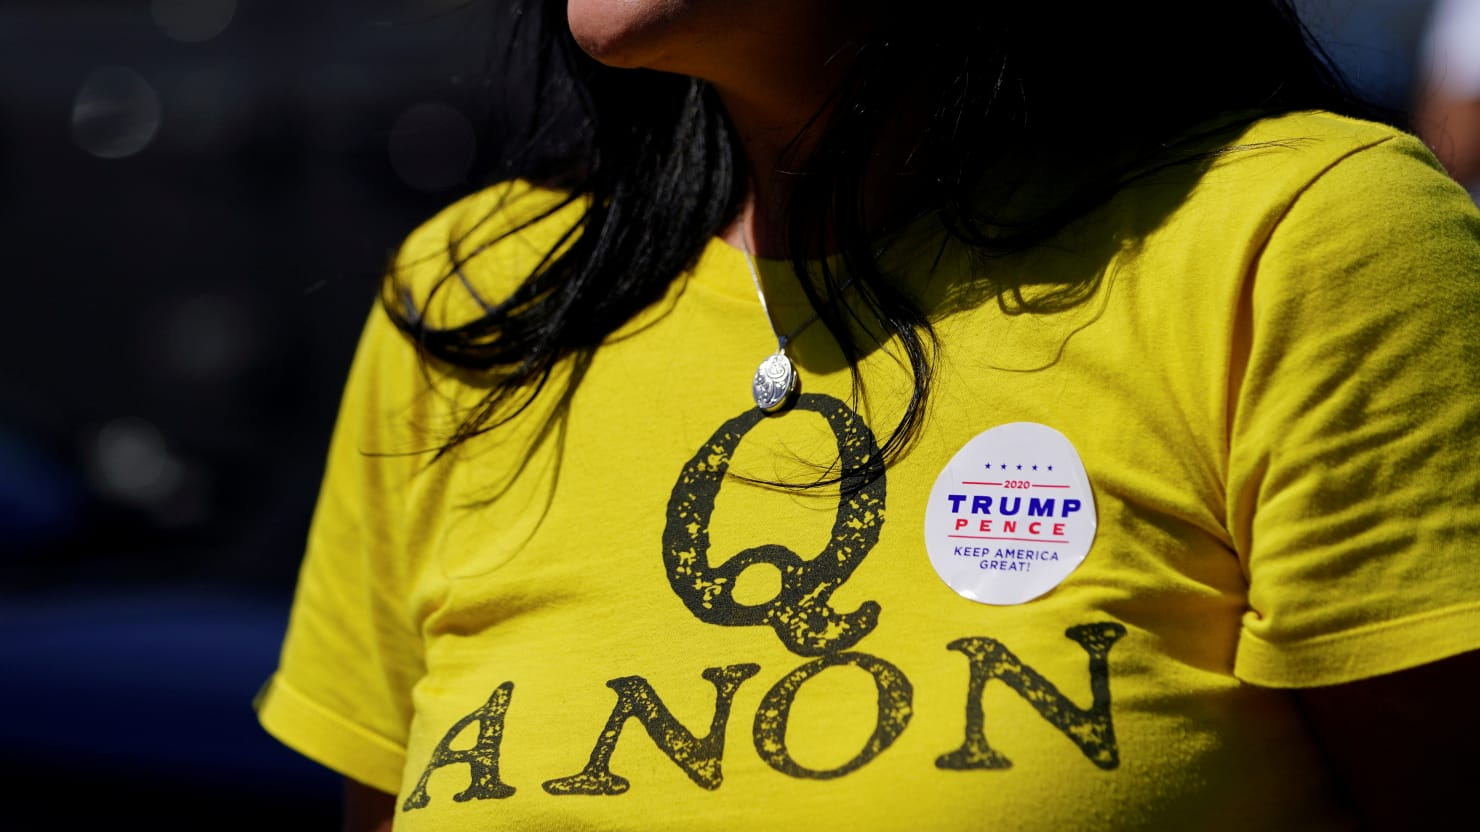 Russia-Backed Twitter Accounts Pushed QAnon Theory Right From Its Start, Says Report